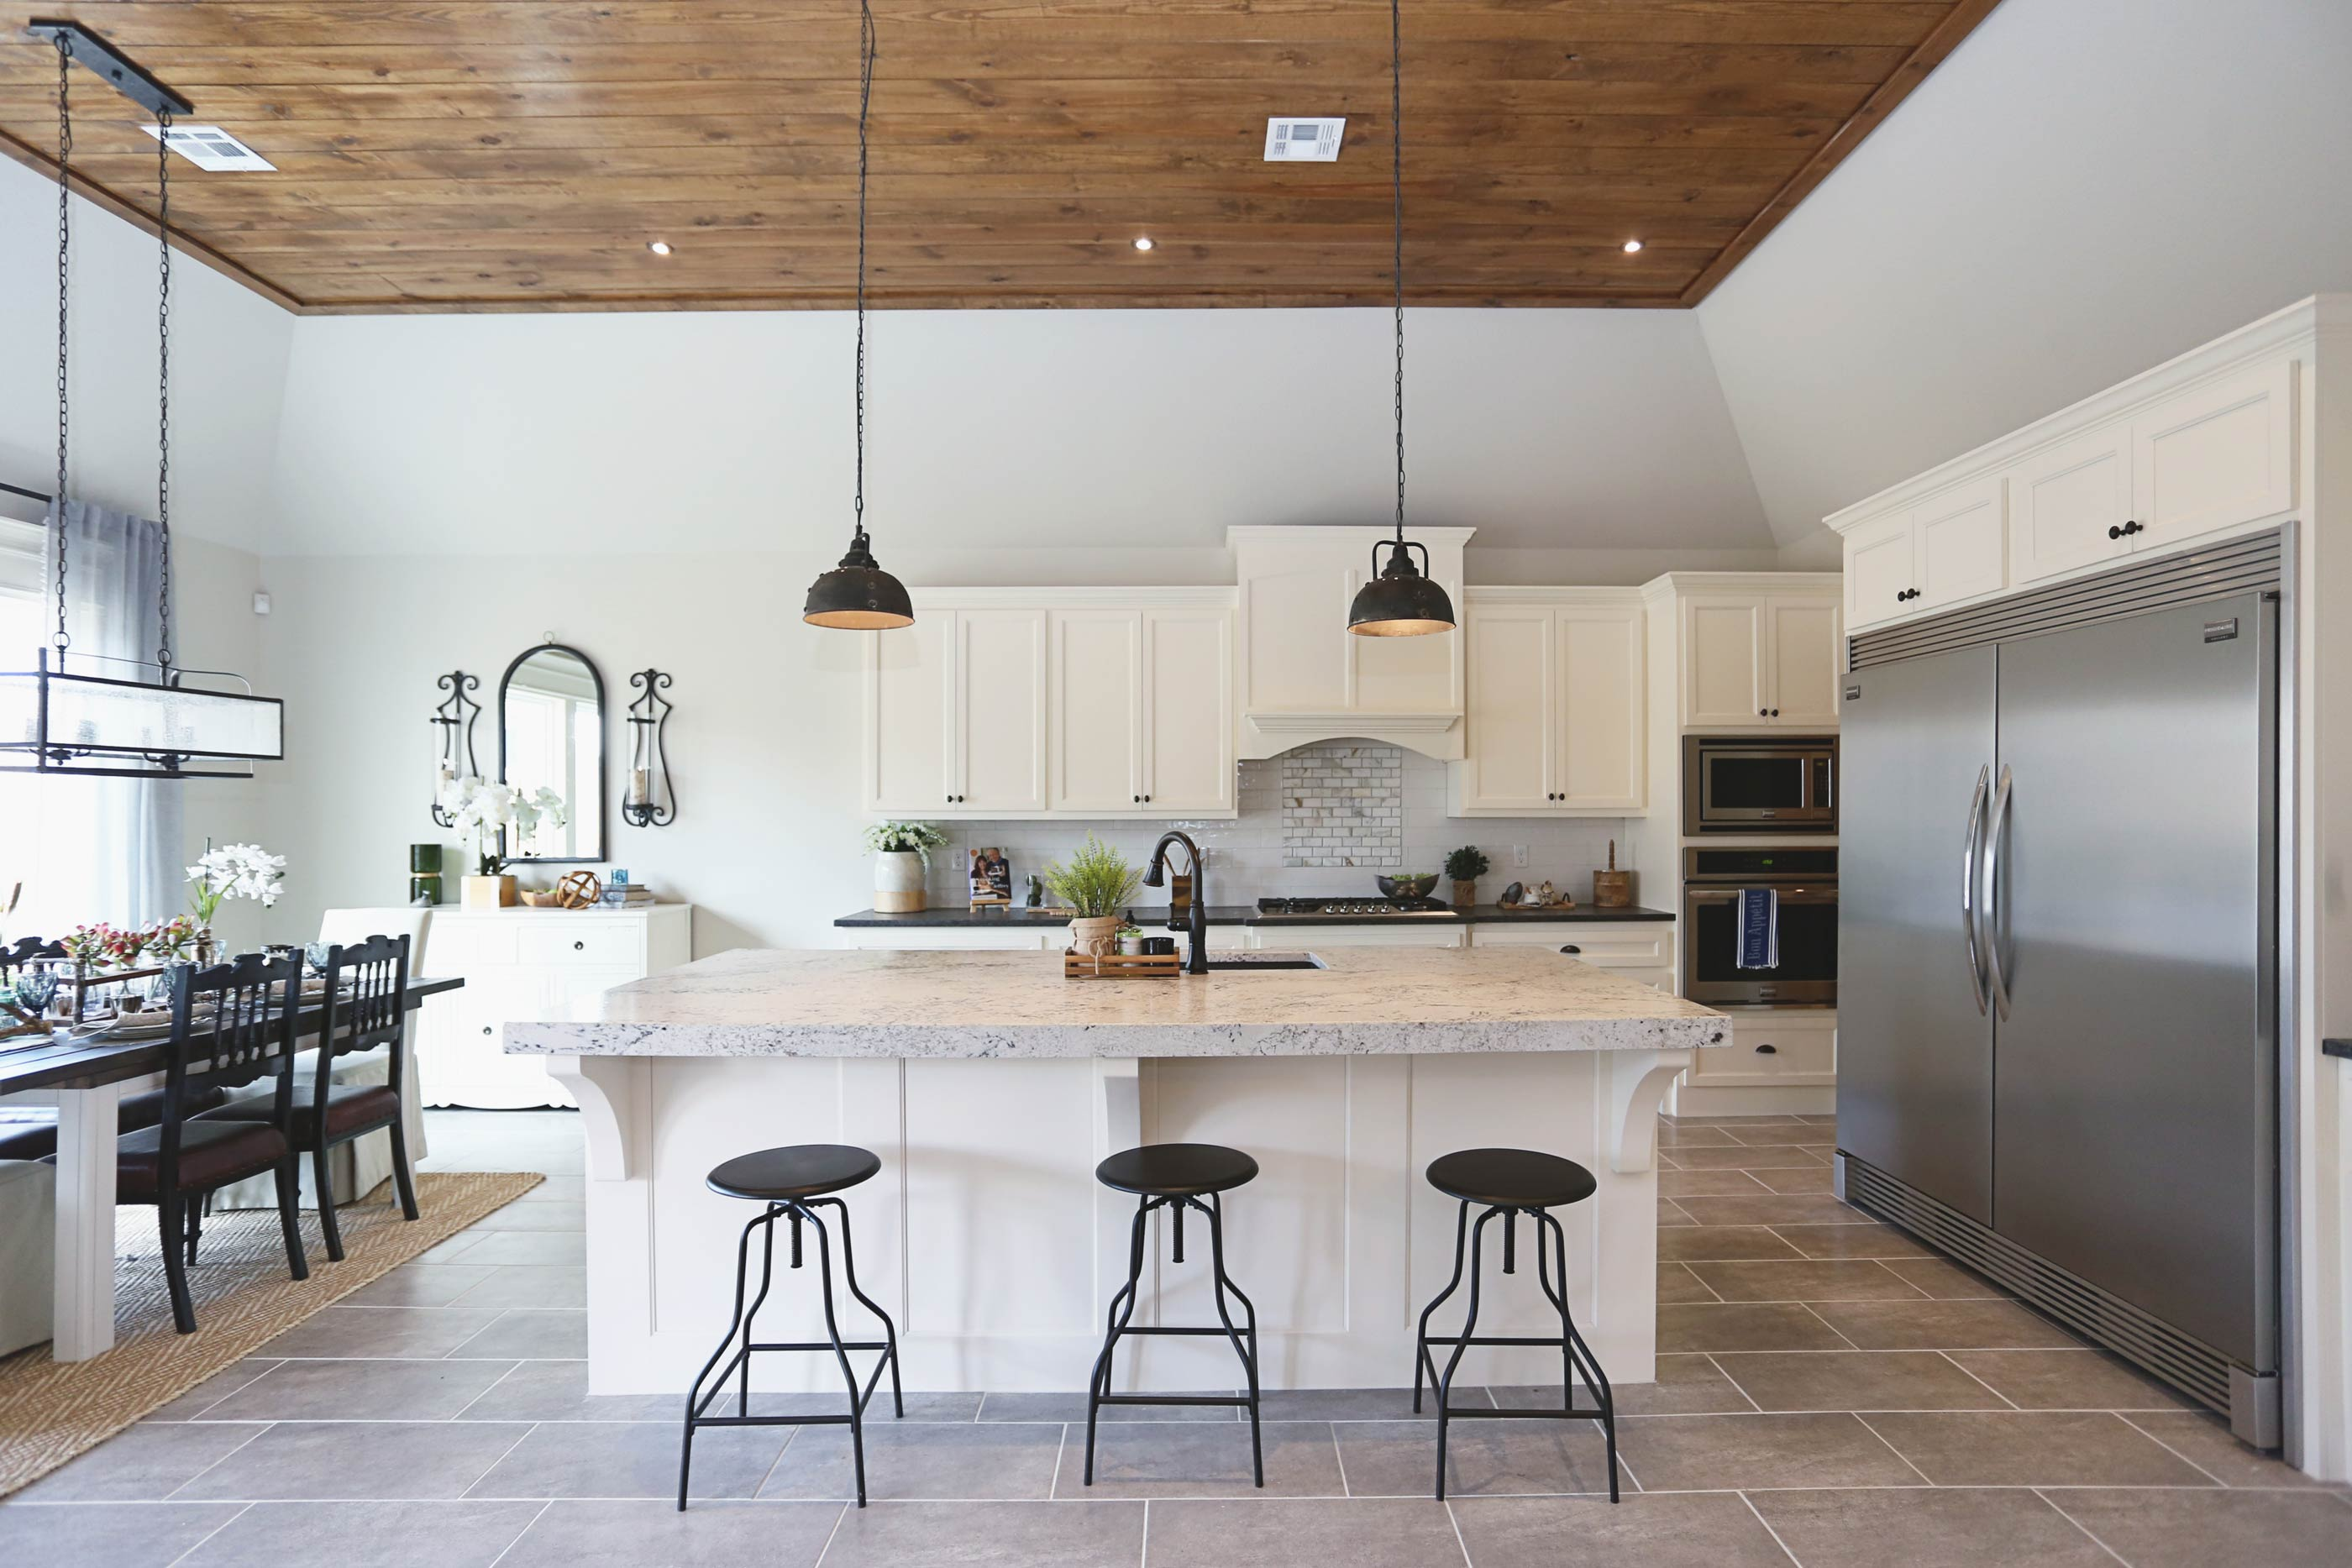 ... Custom Cabinets And Finishes   Standards That Most Builders Consider  Upgrades, Our Kitchens Are Destined To Become The Heart Of The Home.